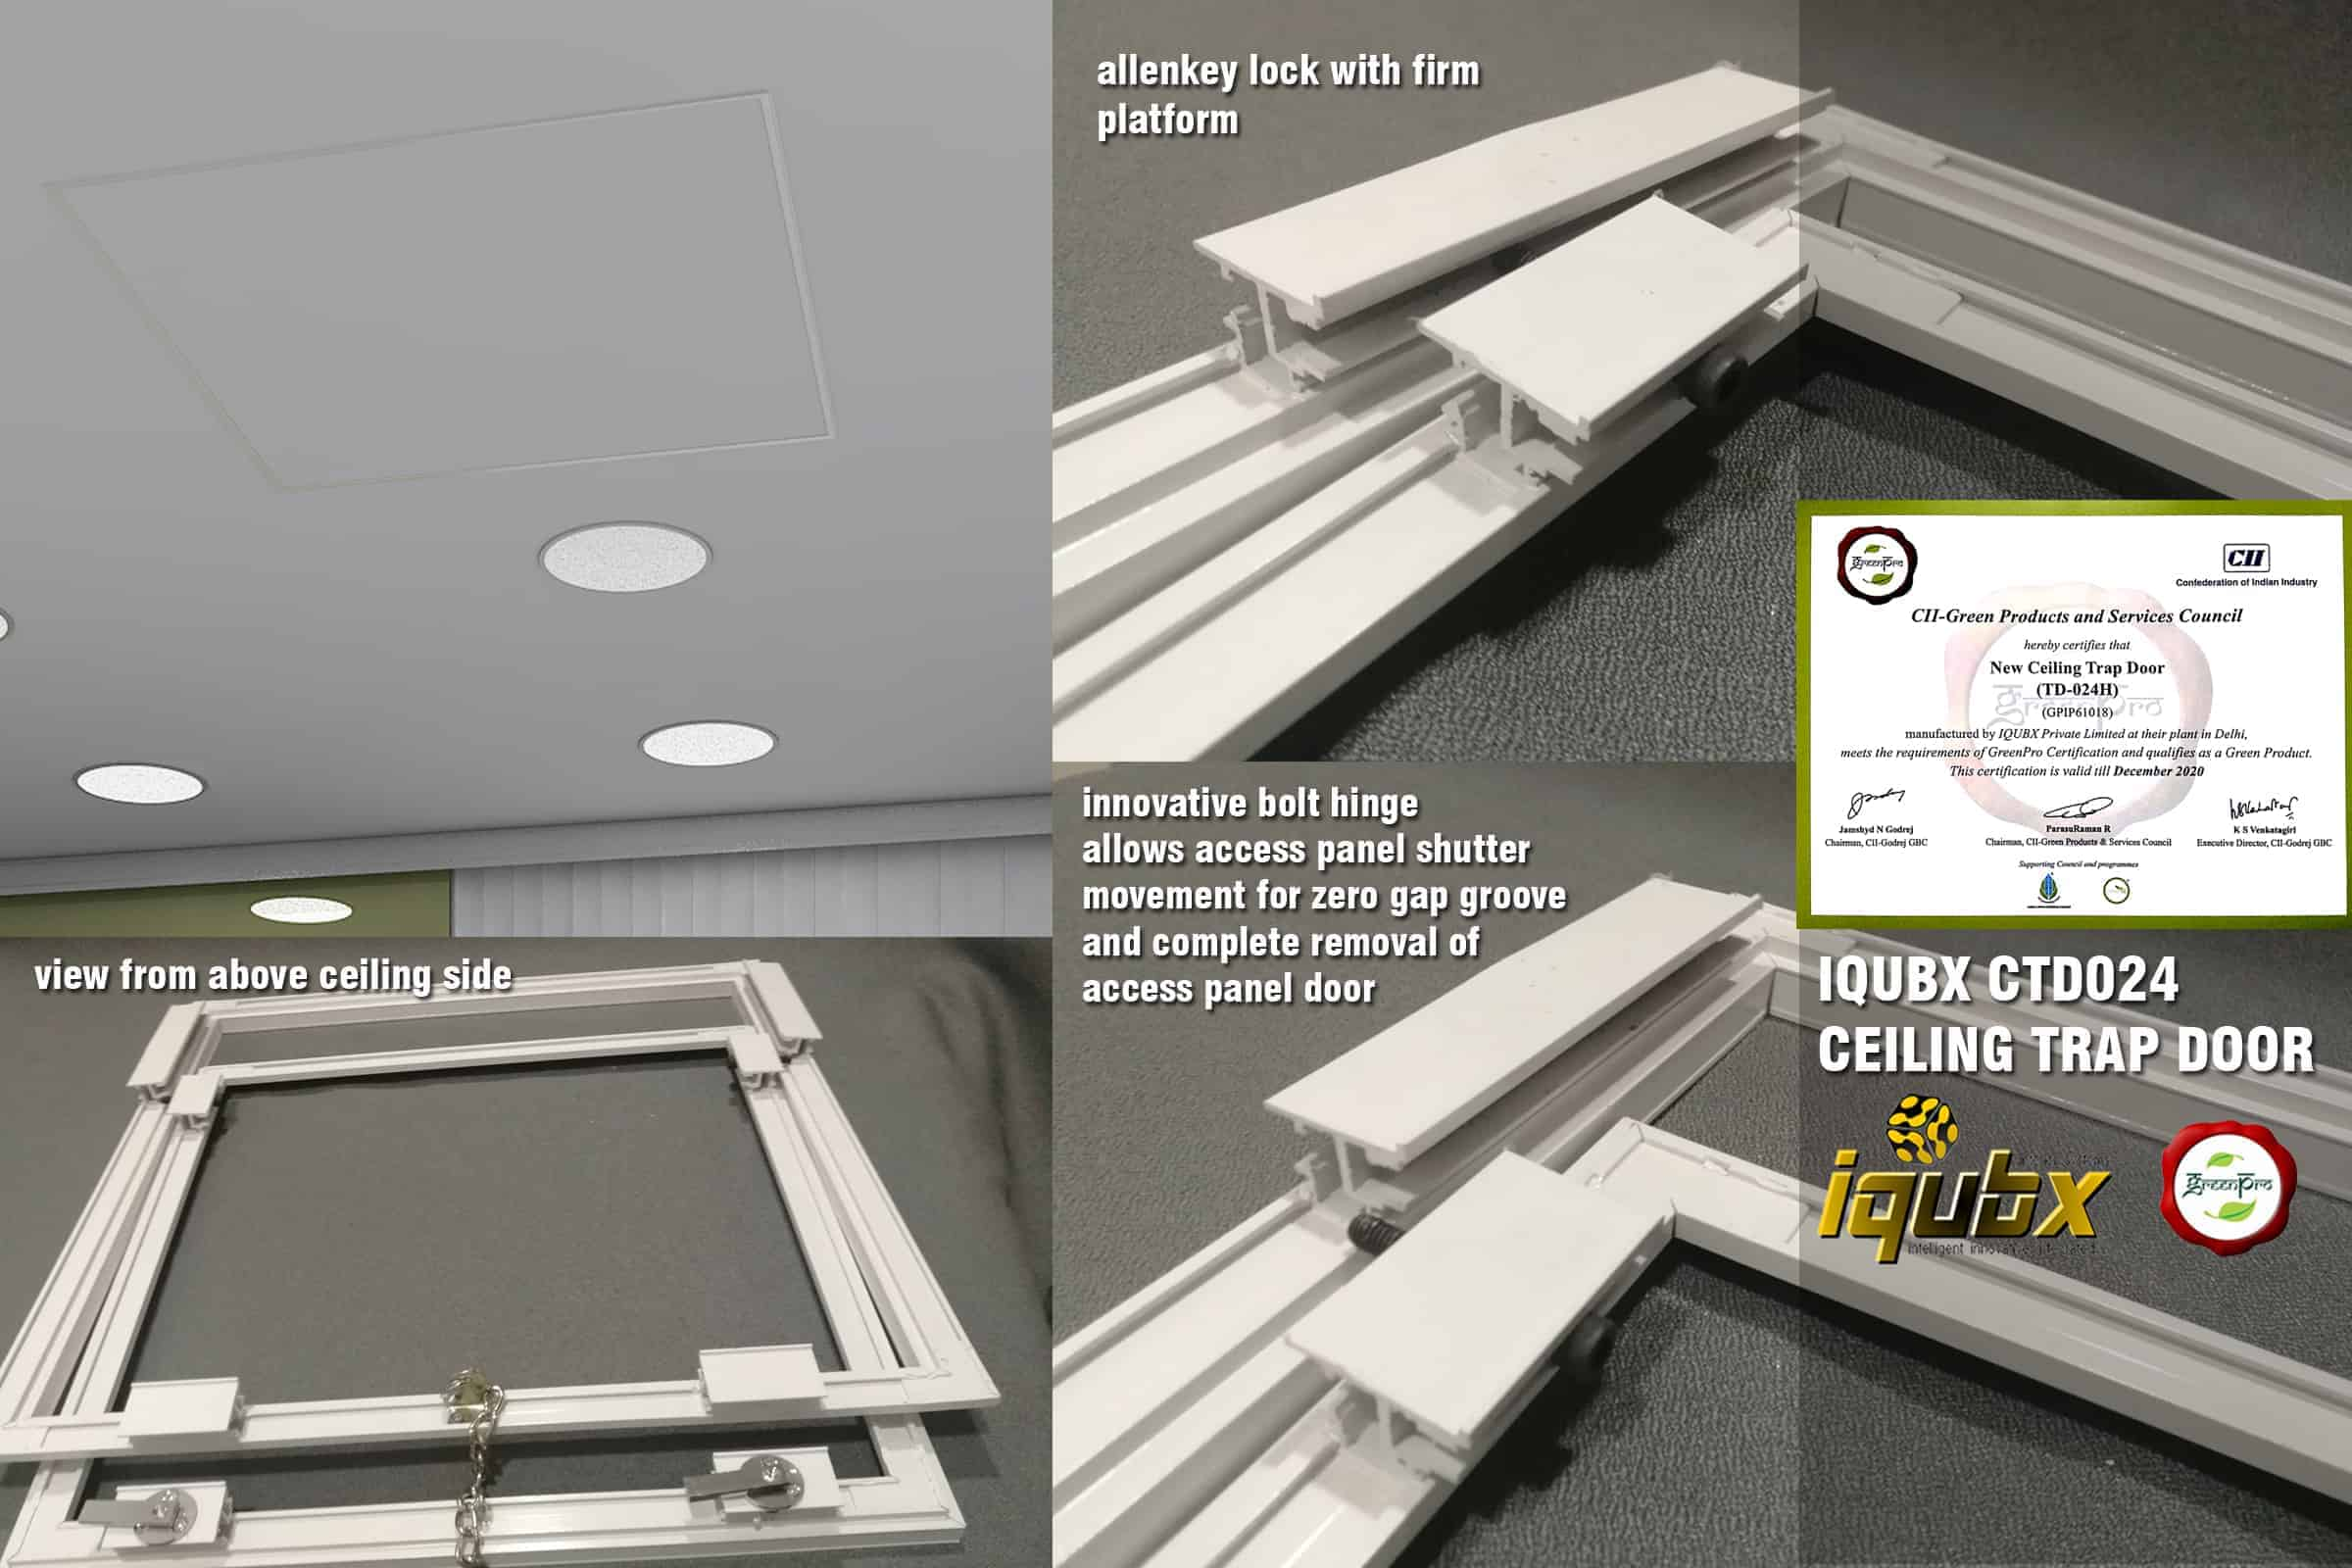 Access Ceiling Trap Door, GREENPRO certified Access Hatch System